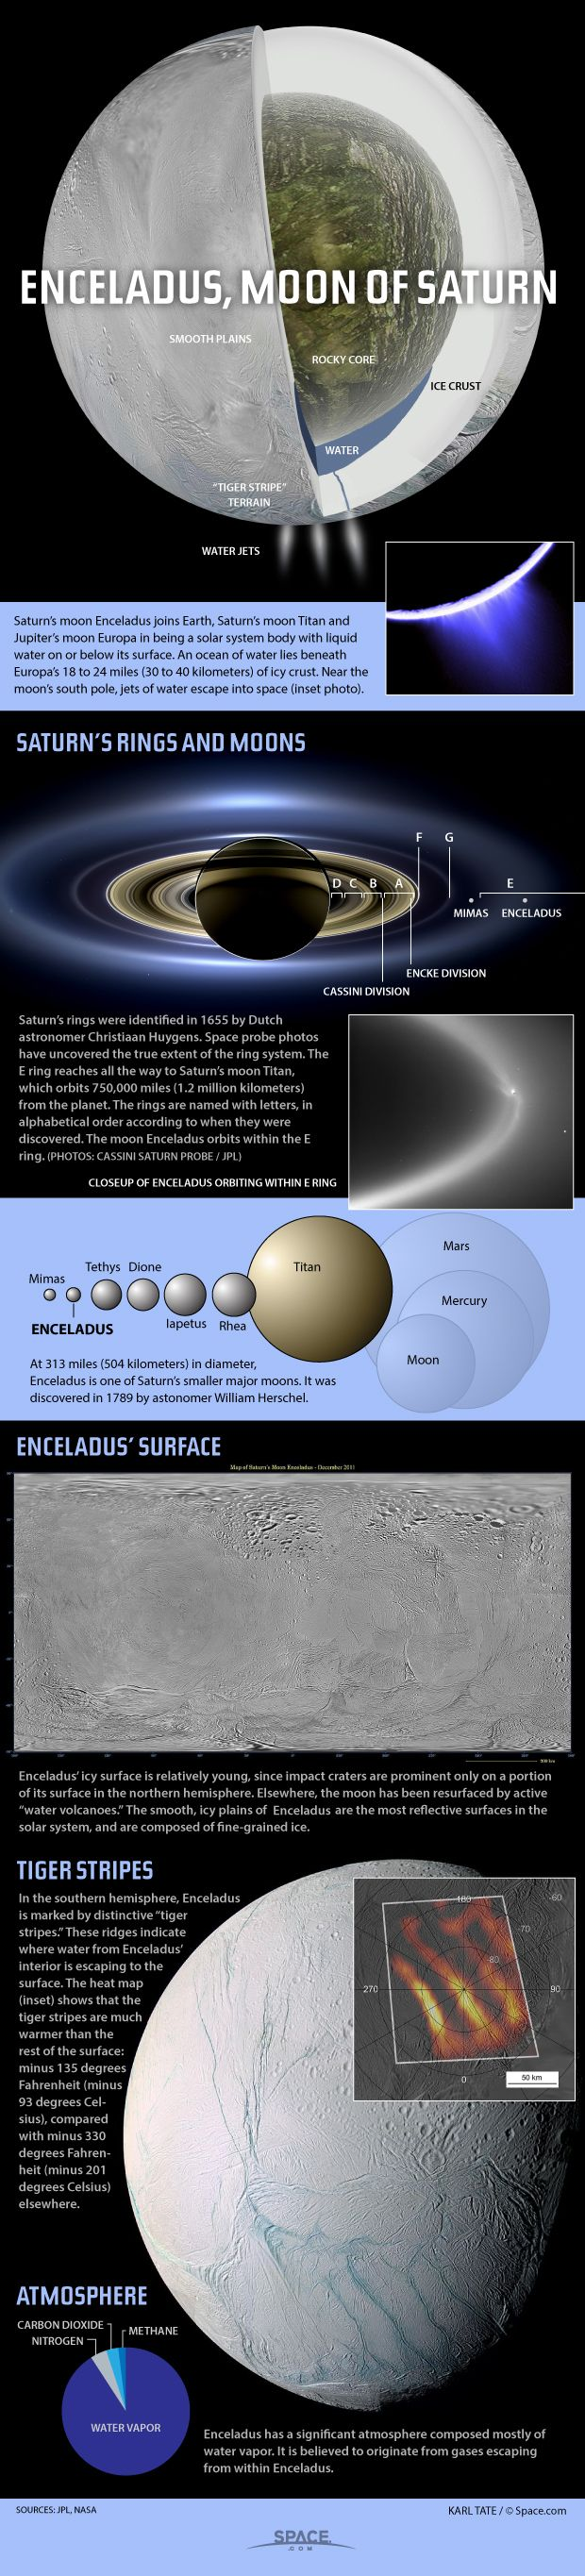 Enceladus has an extensive water ocean under its icy crust, feeding water jets that emerge from near the south pole. -   Credit: By Karl Tate, Infographics Artist